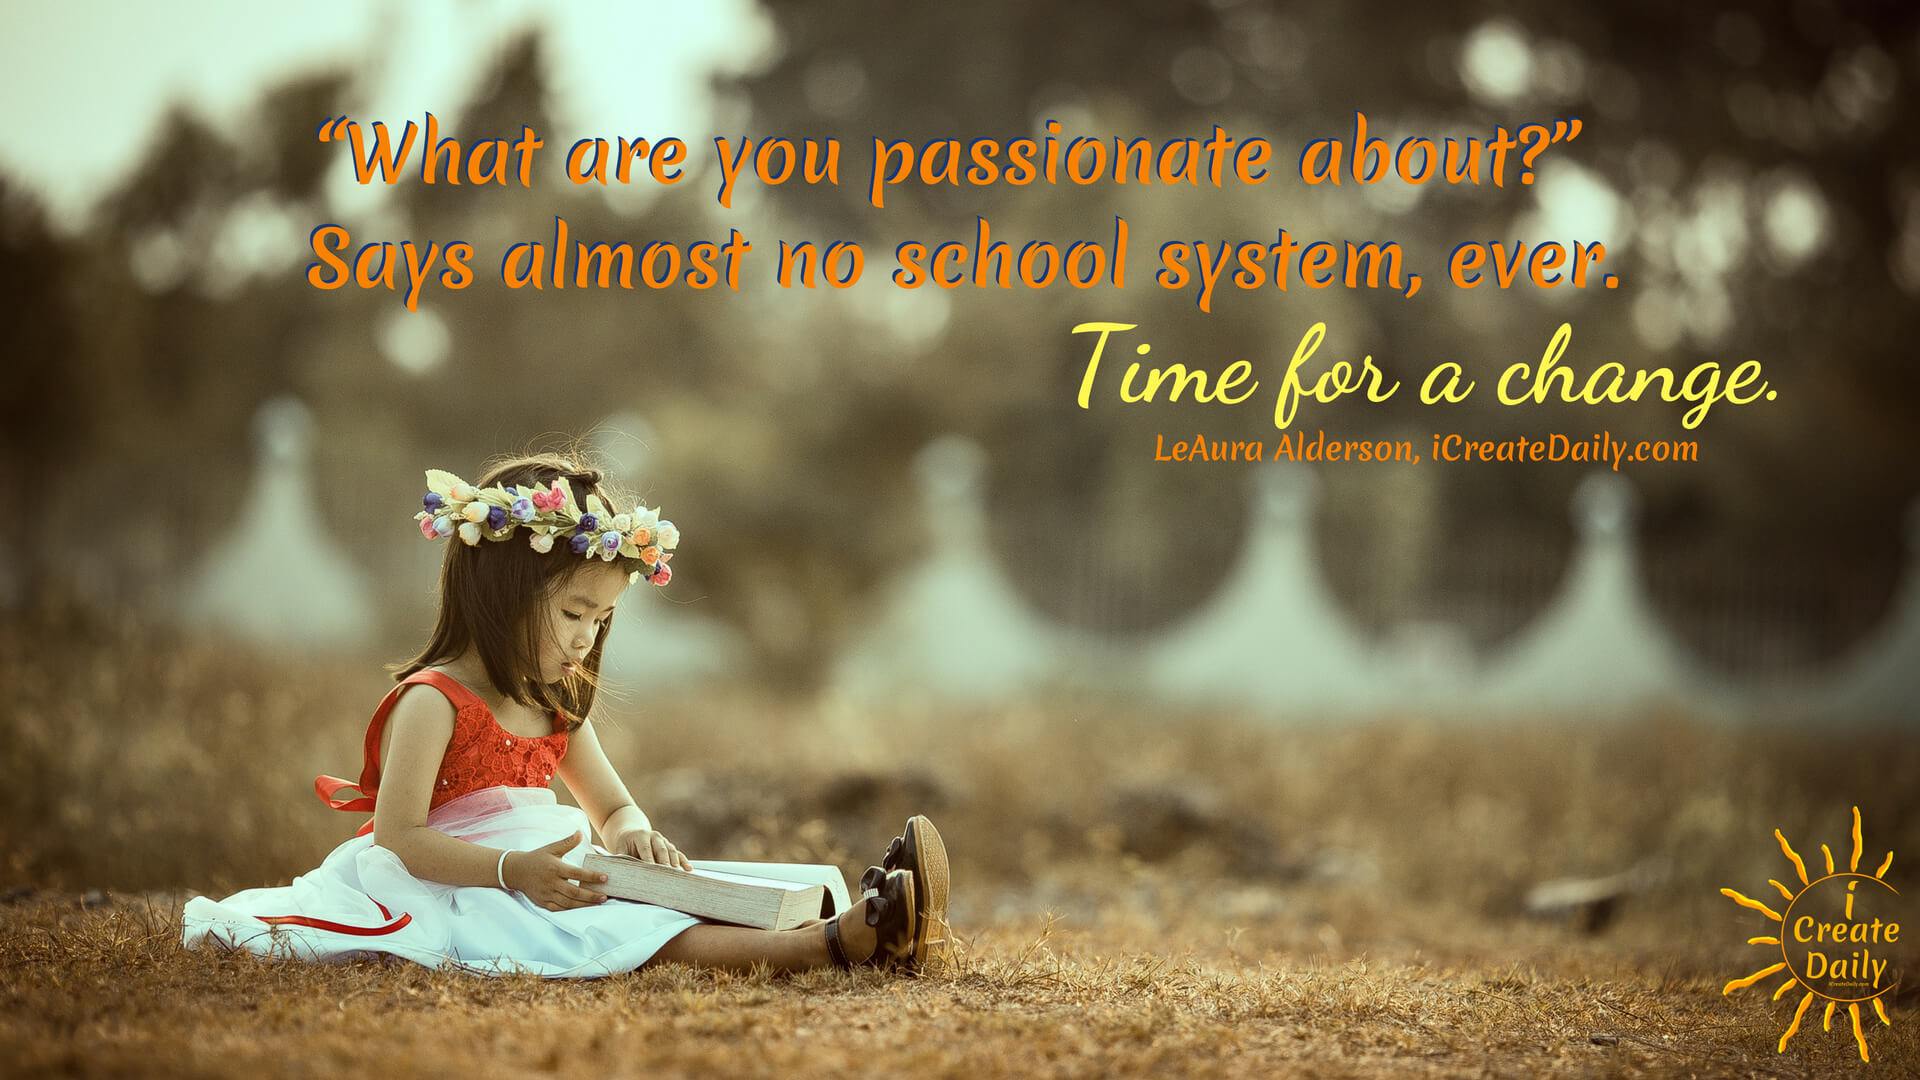 WHAT ARE YOU PASSIONATE ABOUT: Remember, this is NOT about blame. It's about outgrowing old systems and creating newer better ones for the times... for where we are and where we're going. #EducationQuotes #PassionQuote #WhatAreYouPassionateAbout #Transformation #Transmutation